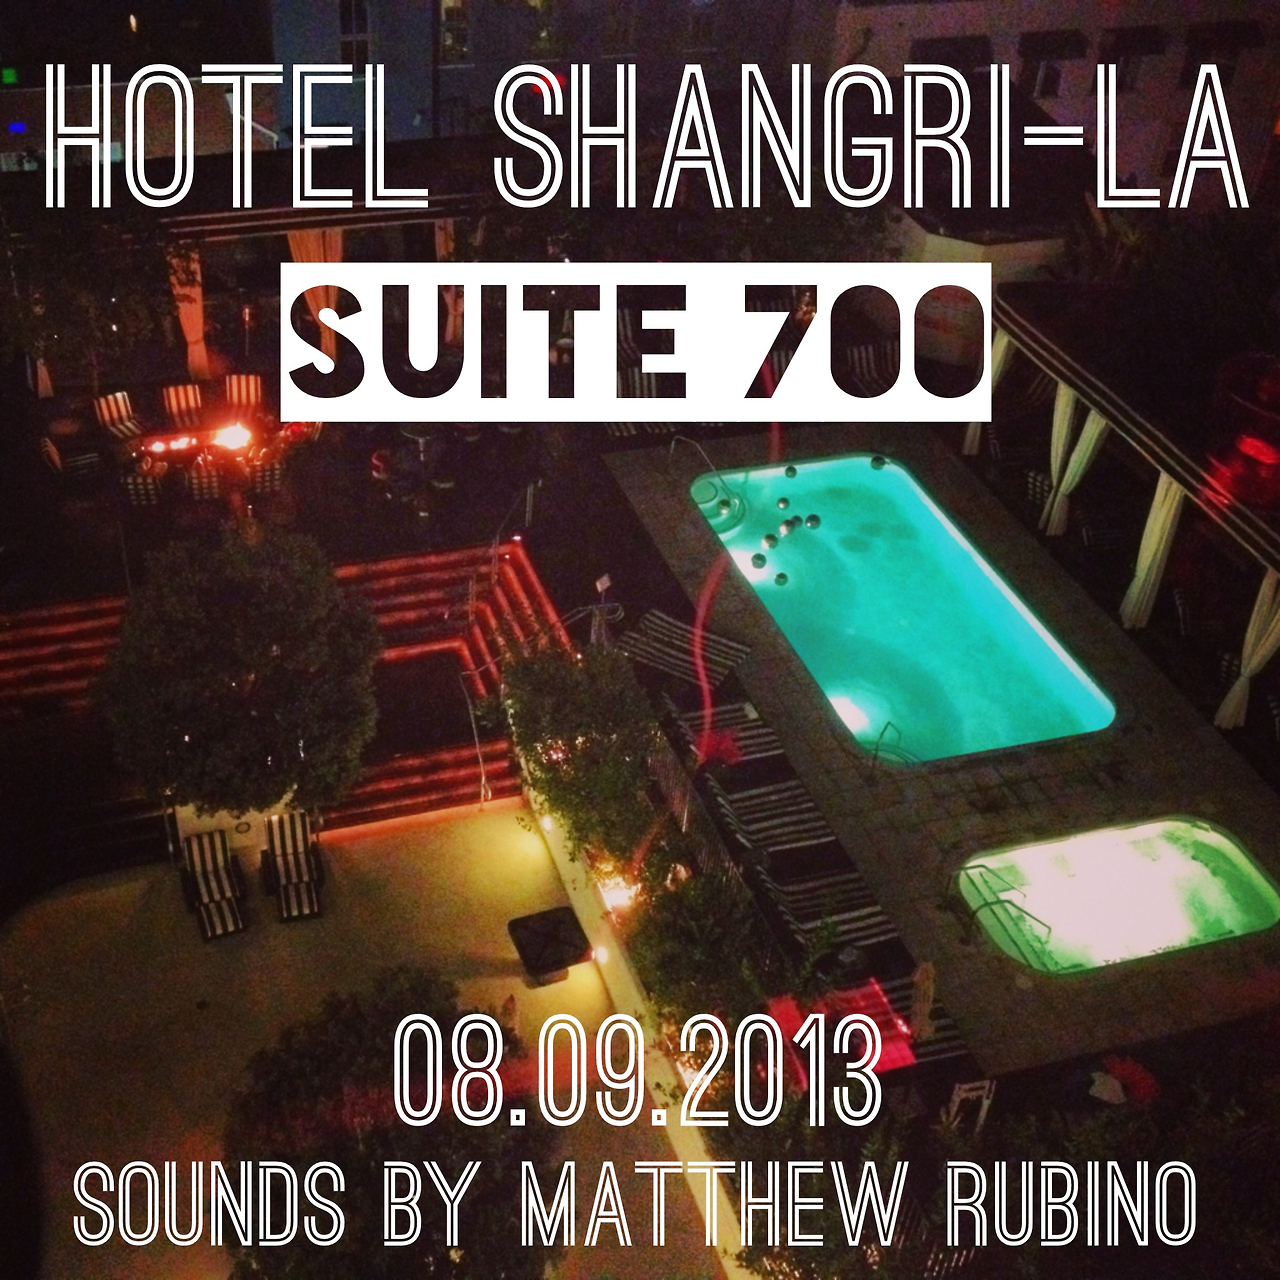 Excited to have Matthew Rubino invited back to provide an eclectic mix of music for his 2nd Friday night at SUITE 700, the penthouse lounge at the art deco inspired Hotel Shangri-la.    1301 Ocean Ave  Santa Monica, CA 90401